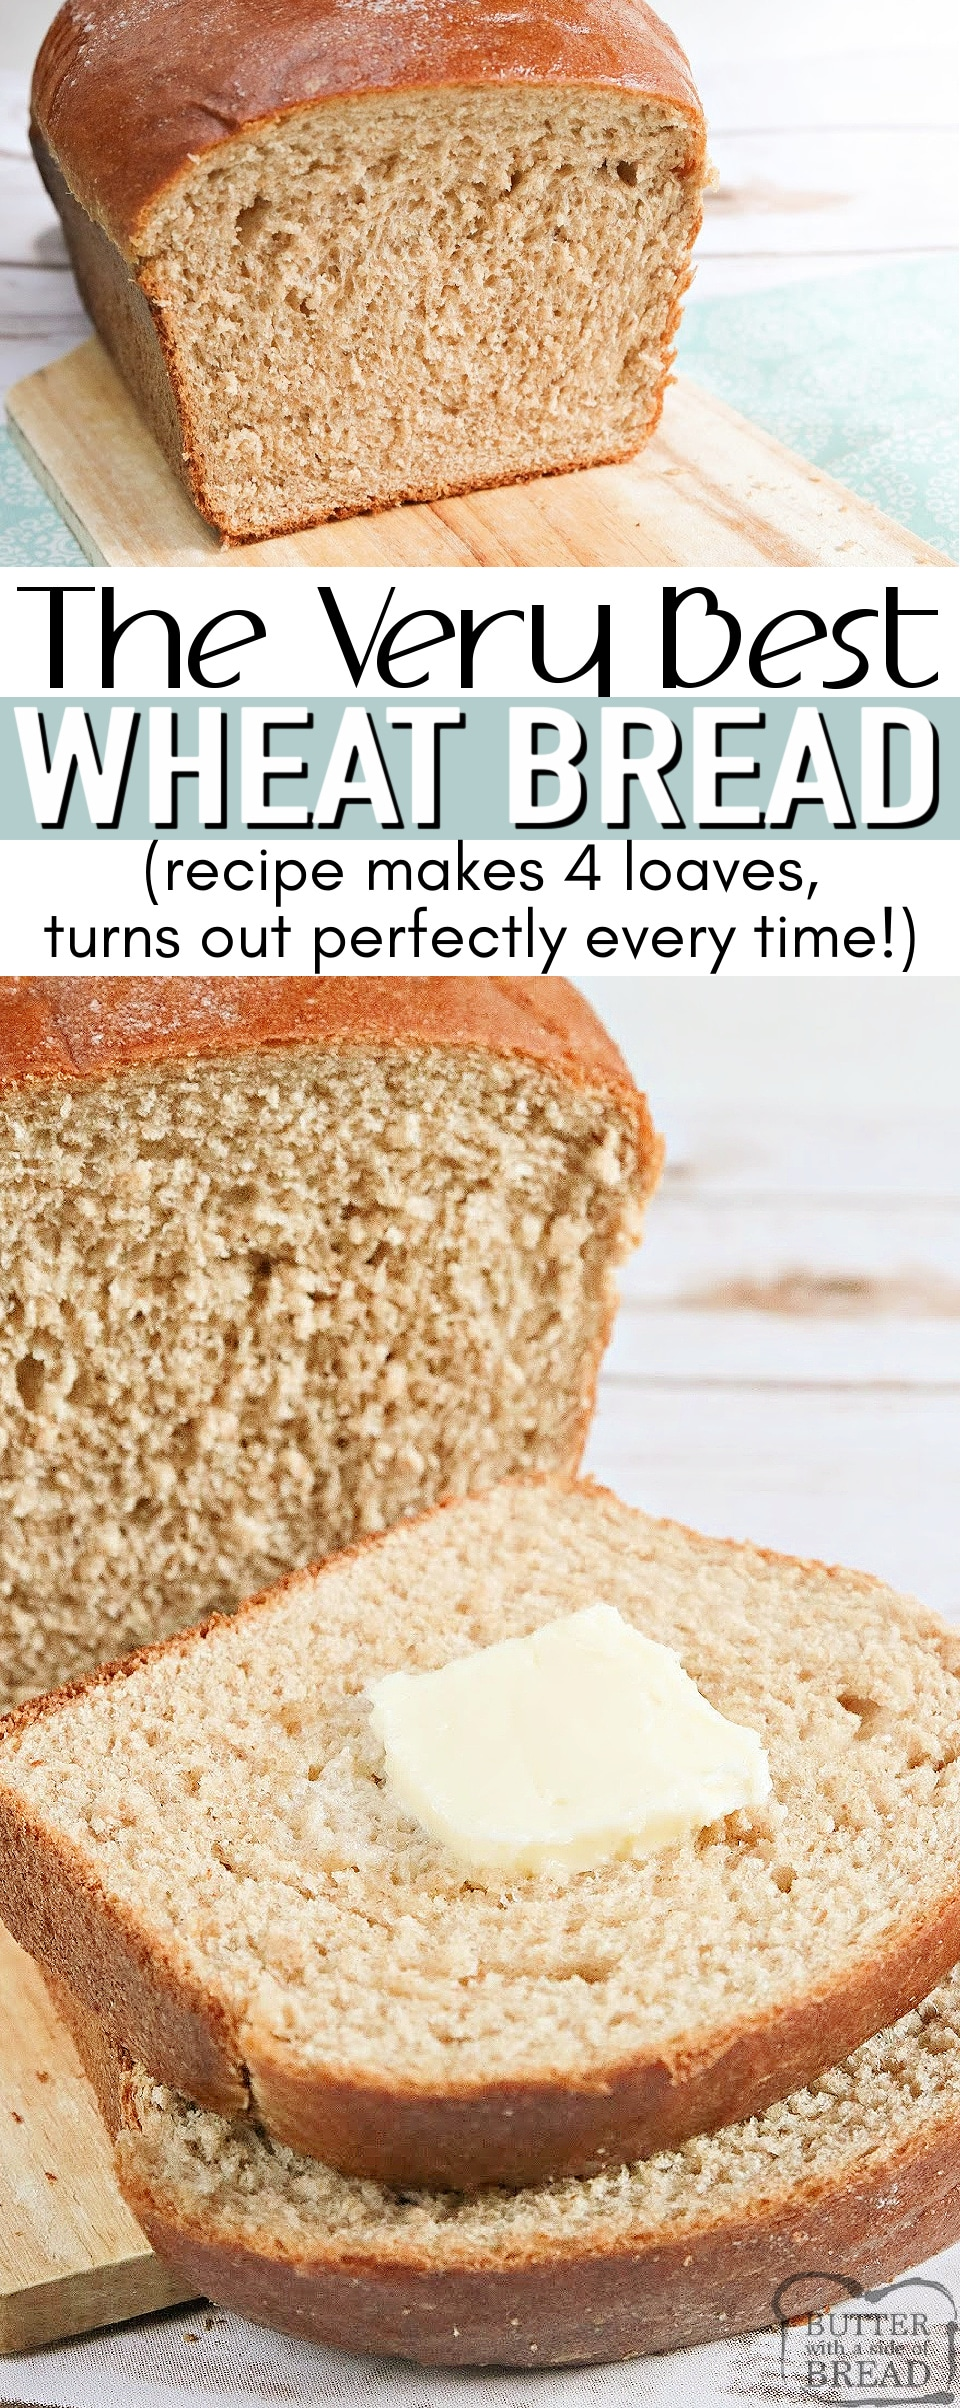 Large Batch Wheat Bread recipe that makes 4 loaves of perfectwheat bread every single time. I love homemade bread and this recipe is the most foolproof (and delicious) wheat bread recipe that I've ever tried.